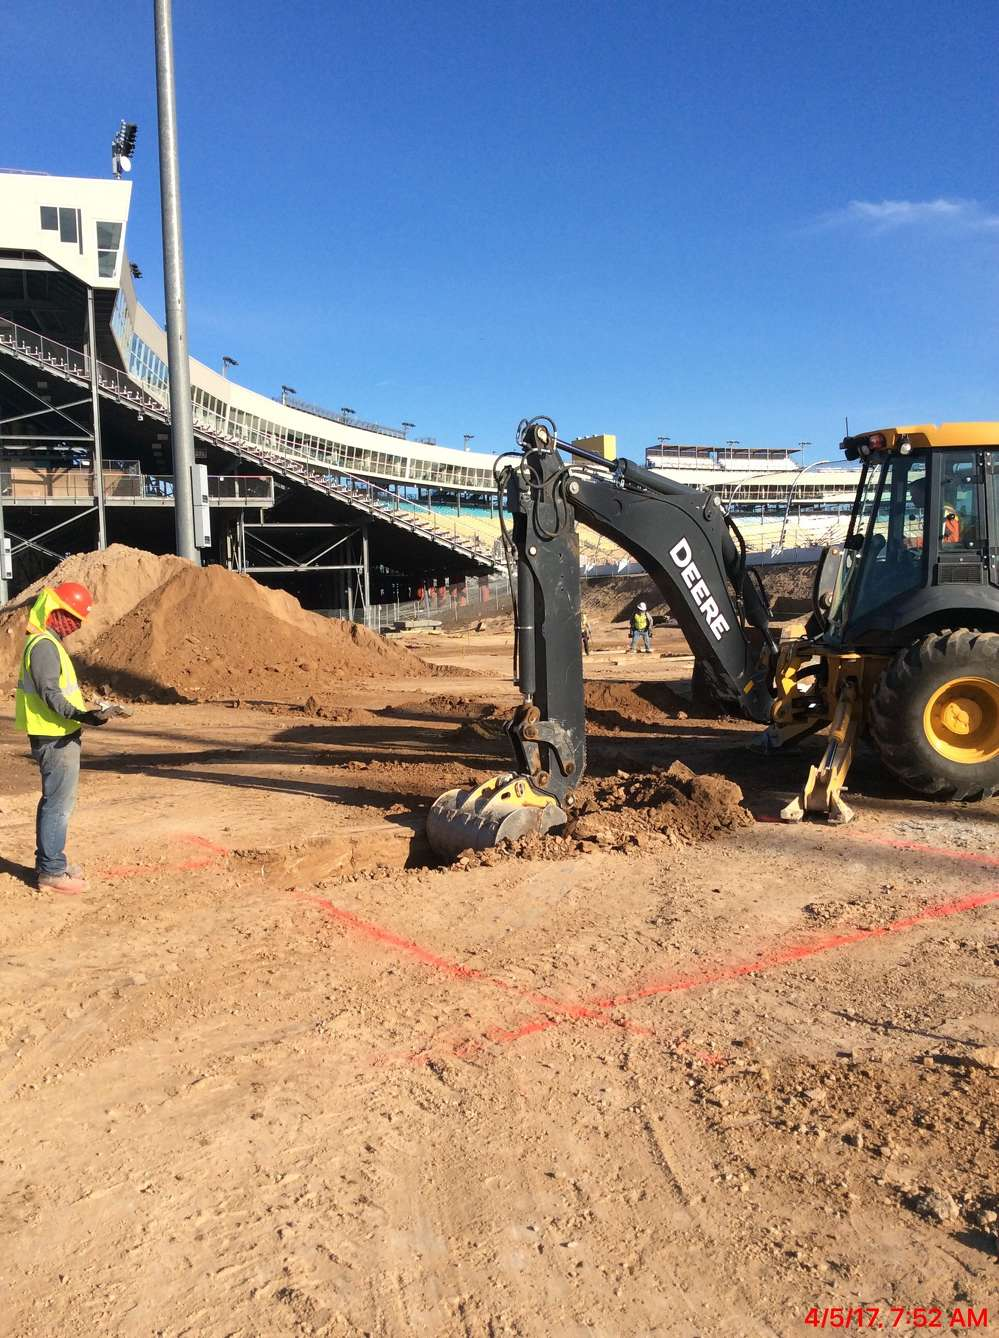 Construction on the Phoenix International Raceway modernization project began in early 2017.